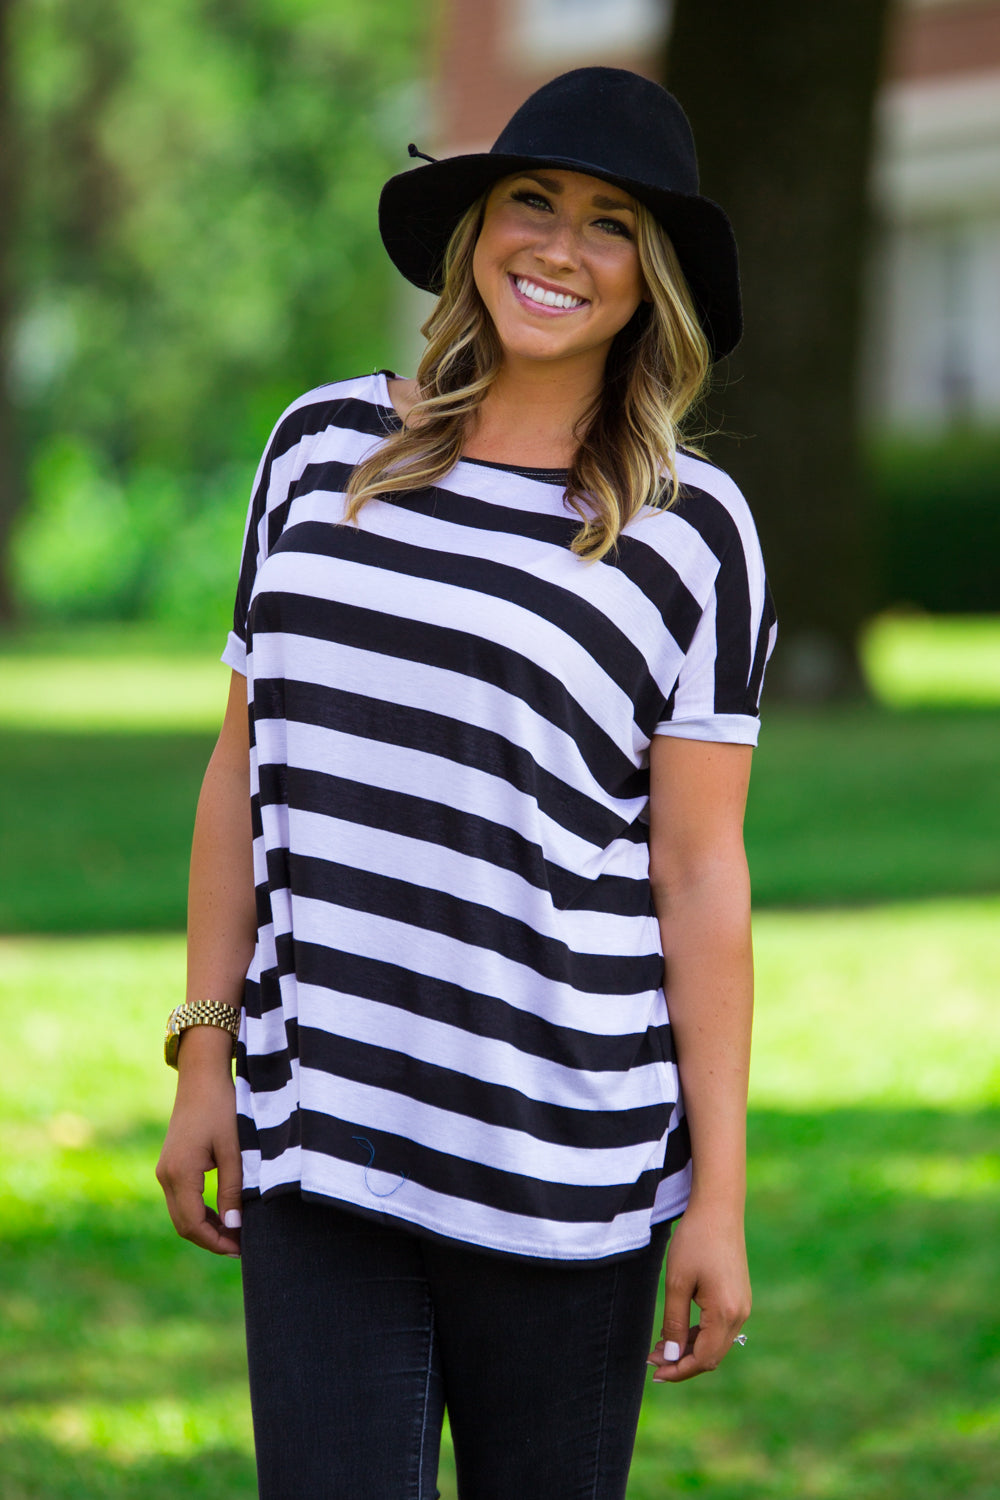 Short Sleeve Thick Stripe Piko Top - Black/White - Piko Clothing